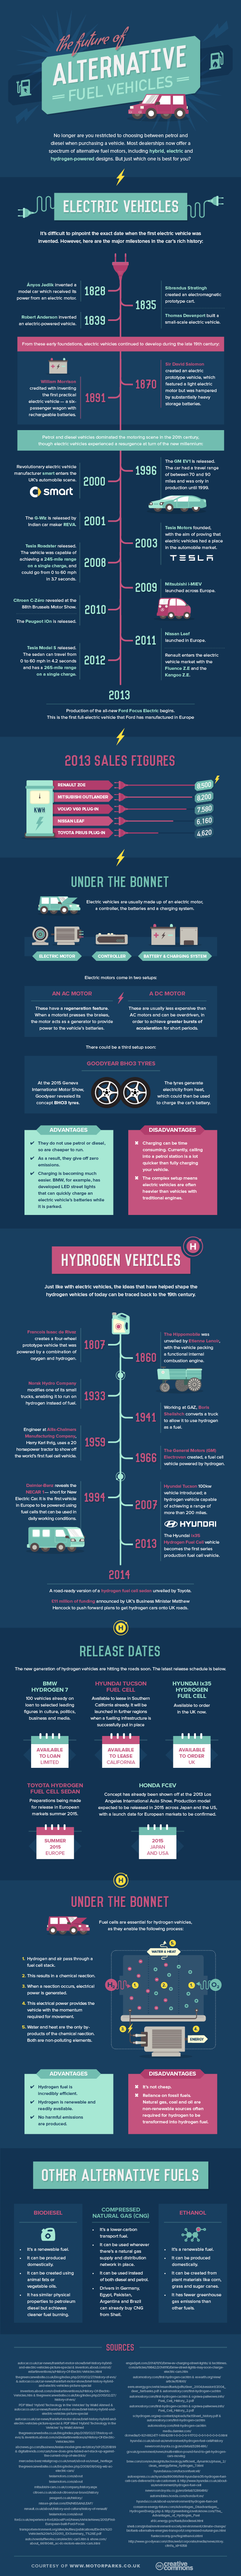 The Future of Alternative Fuel Vehicles #infographic